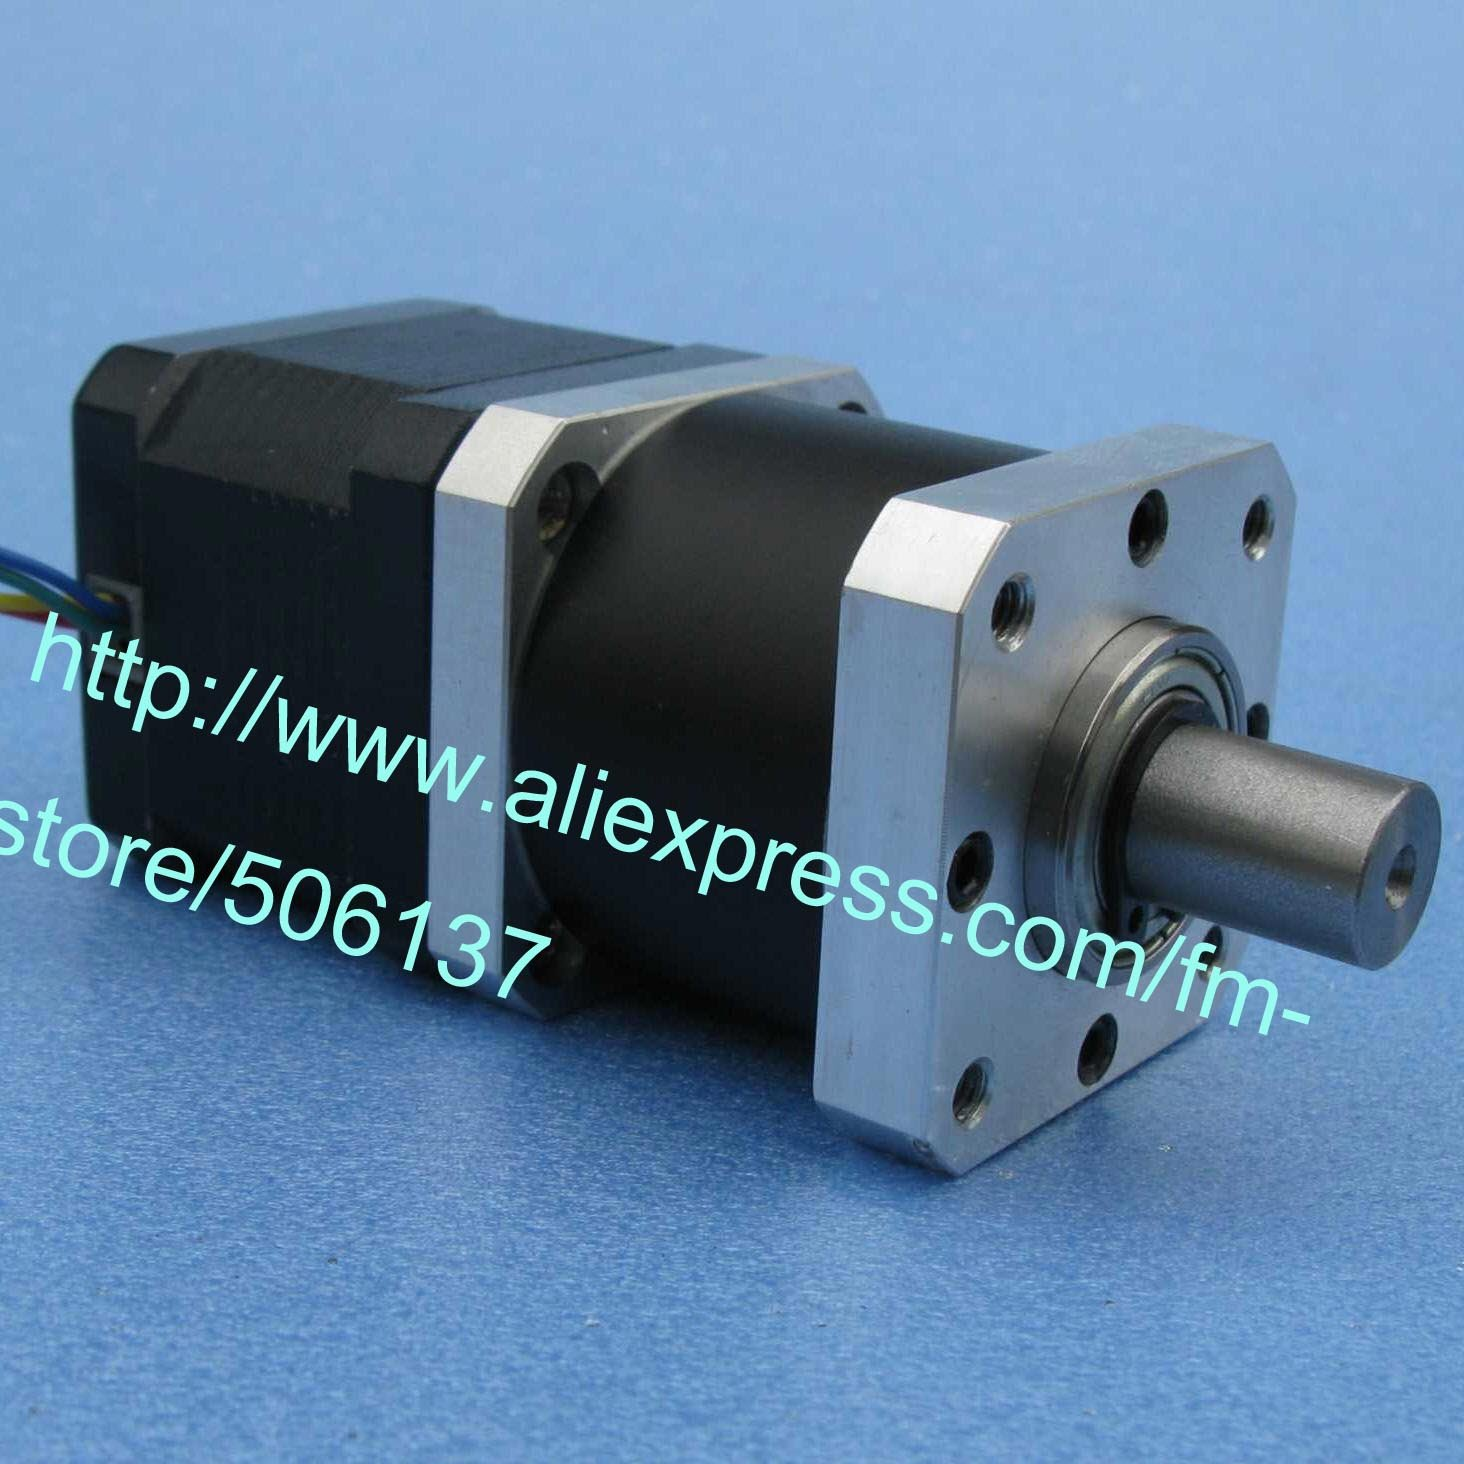 Two phase four wire Hybrid stepping motor  GP42 planetary gearbox 42mm  Nema 17 gearbox in stepper motor Nema 17 Step gear motor 428yghm818 stepper motor two phase four wire